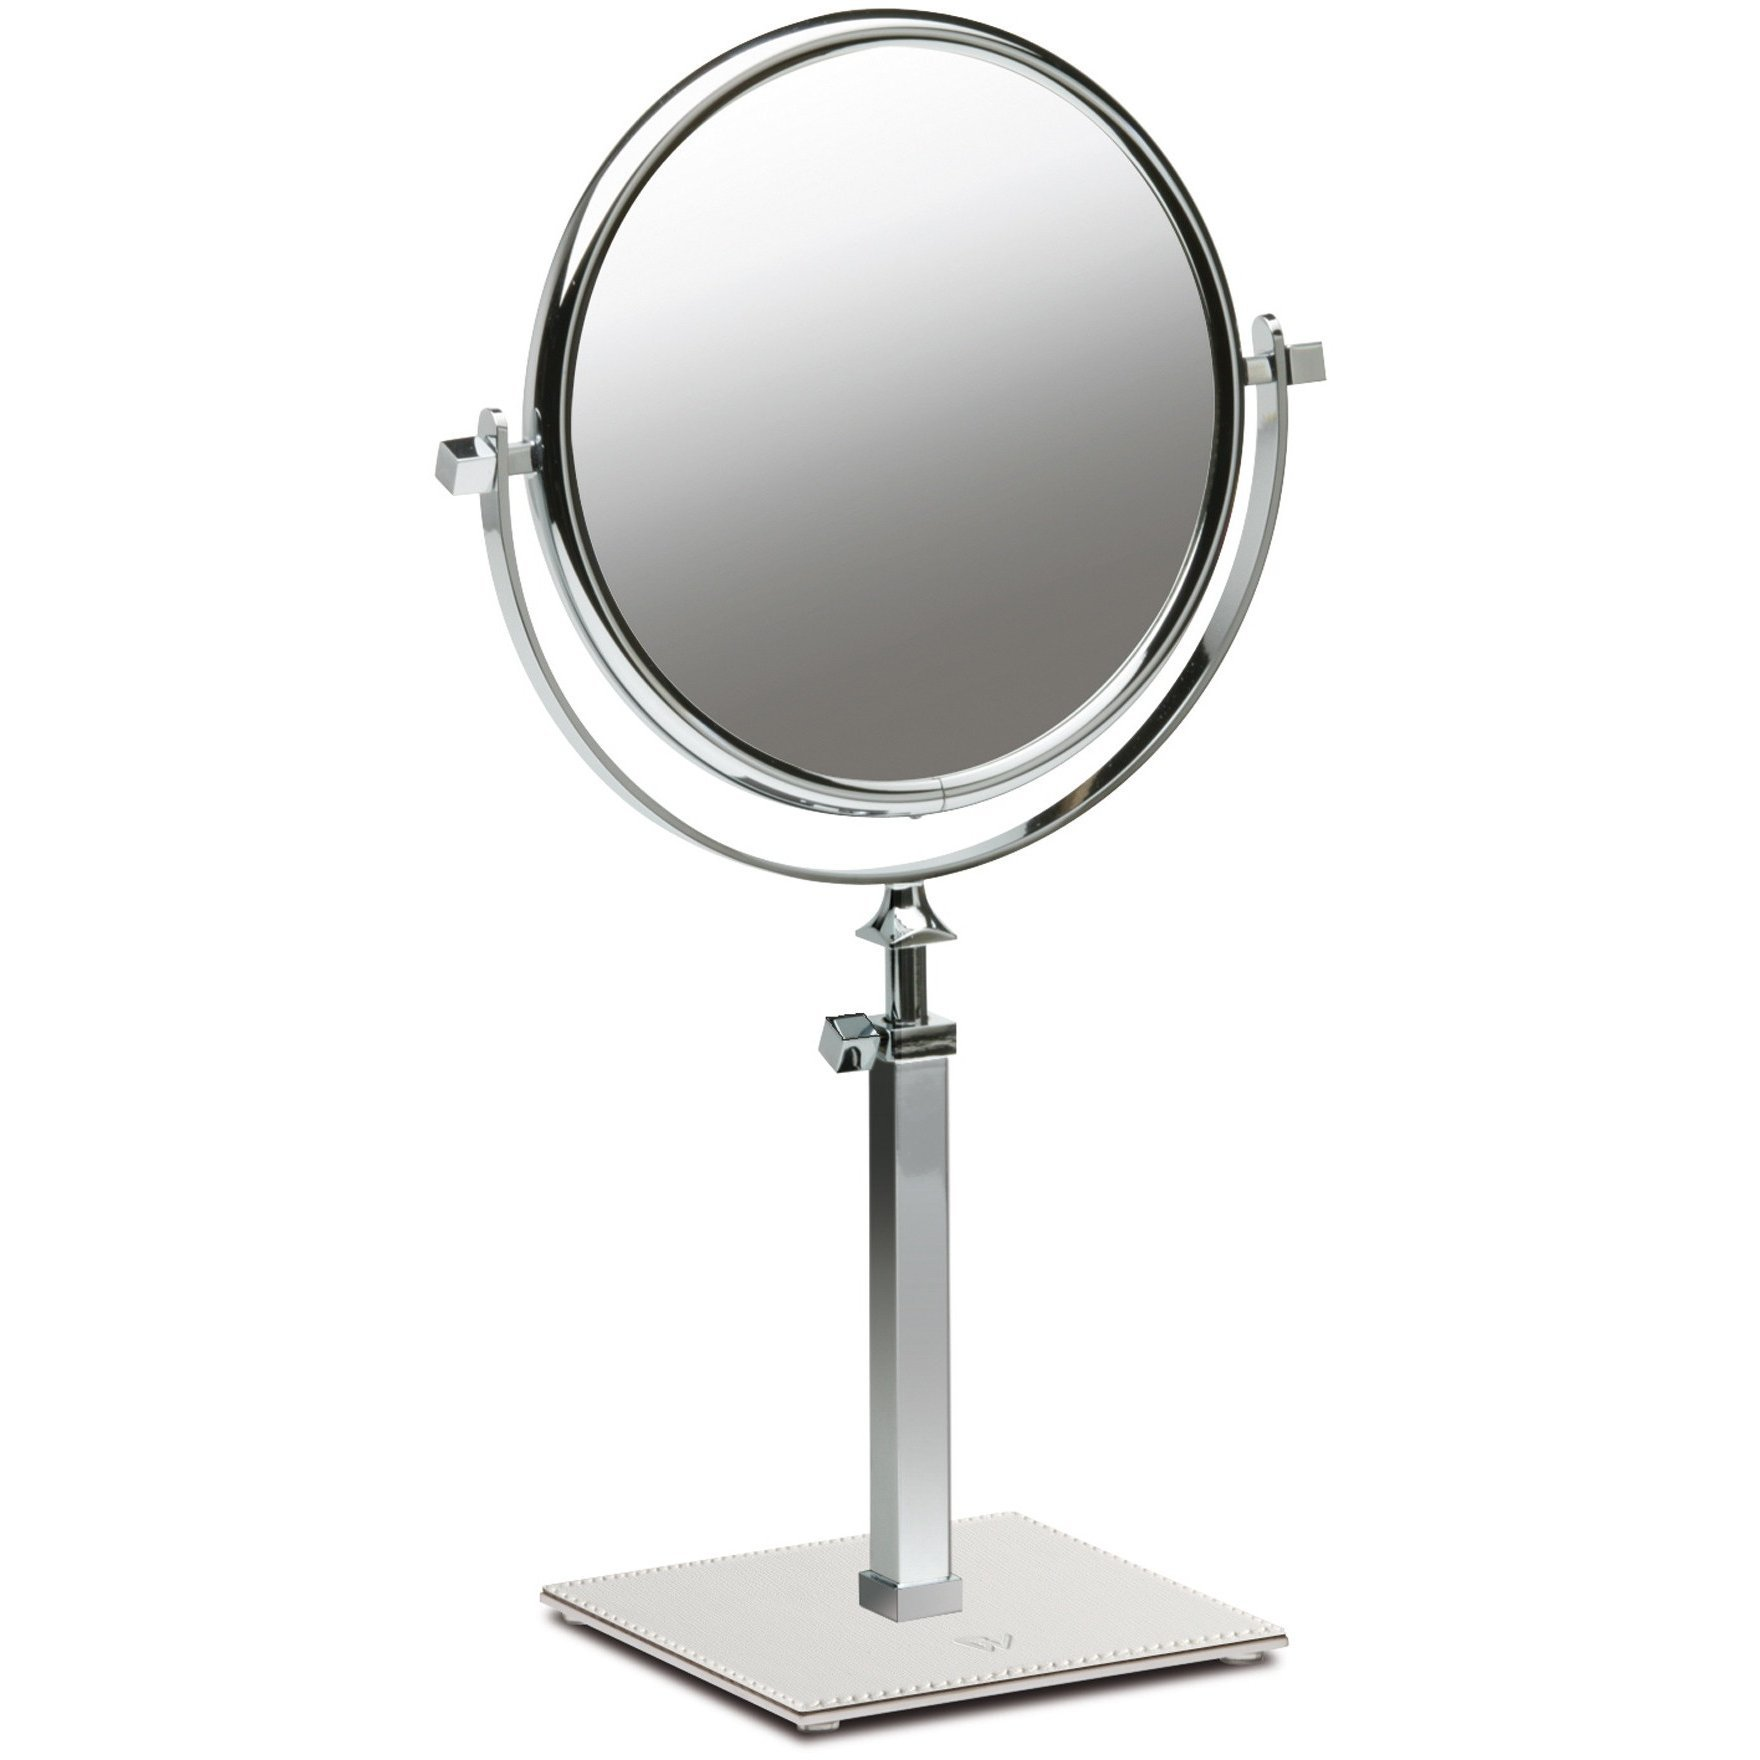 Box Kenia Table Dual Sided Cosmetic Makeup Magnifying Mirror Extendable, Leather (White, 5X Magnification)